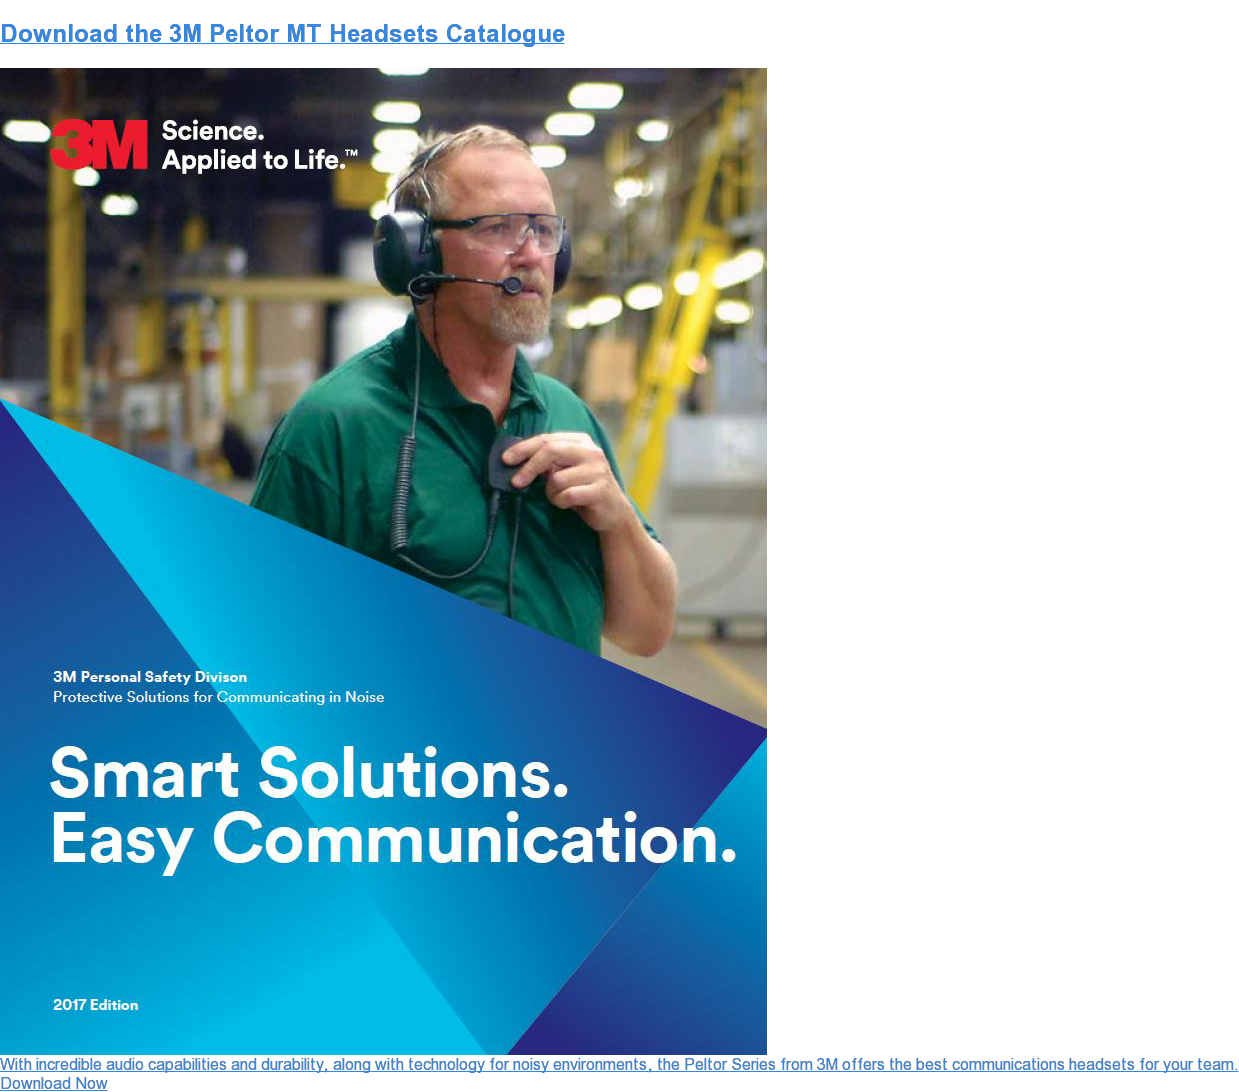 Download the3M Peltor MT HeadsetsCatalogue  With incredible audiocapabilities and durability, along with technology for  noisy environments, the Peltor Series from 3M offers the best  communicationsheadsets for your team. Download Now